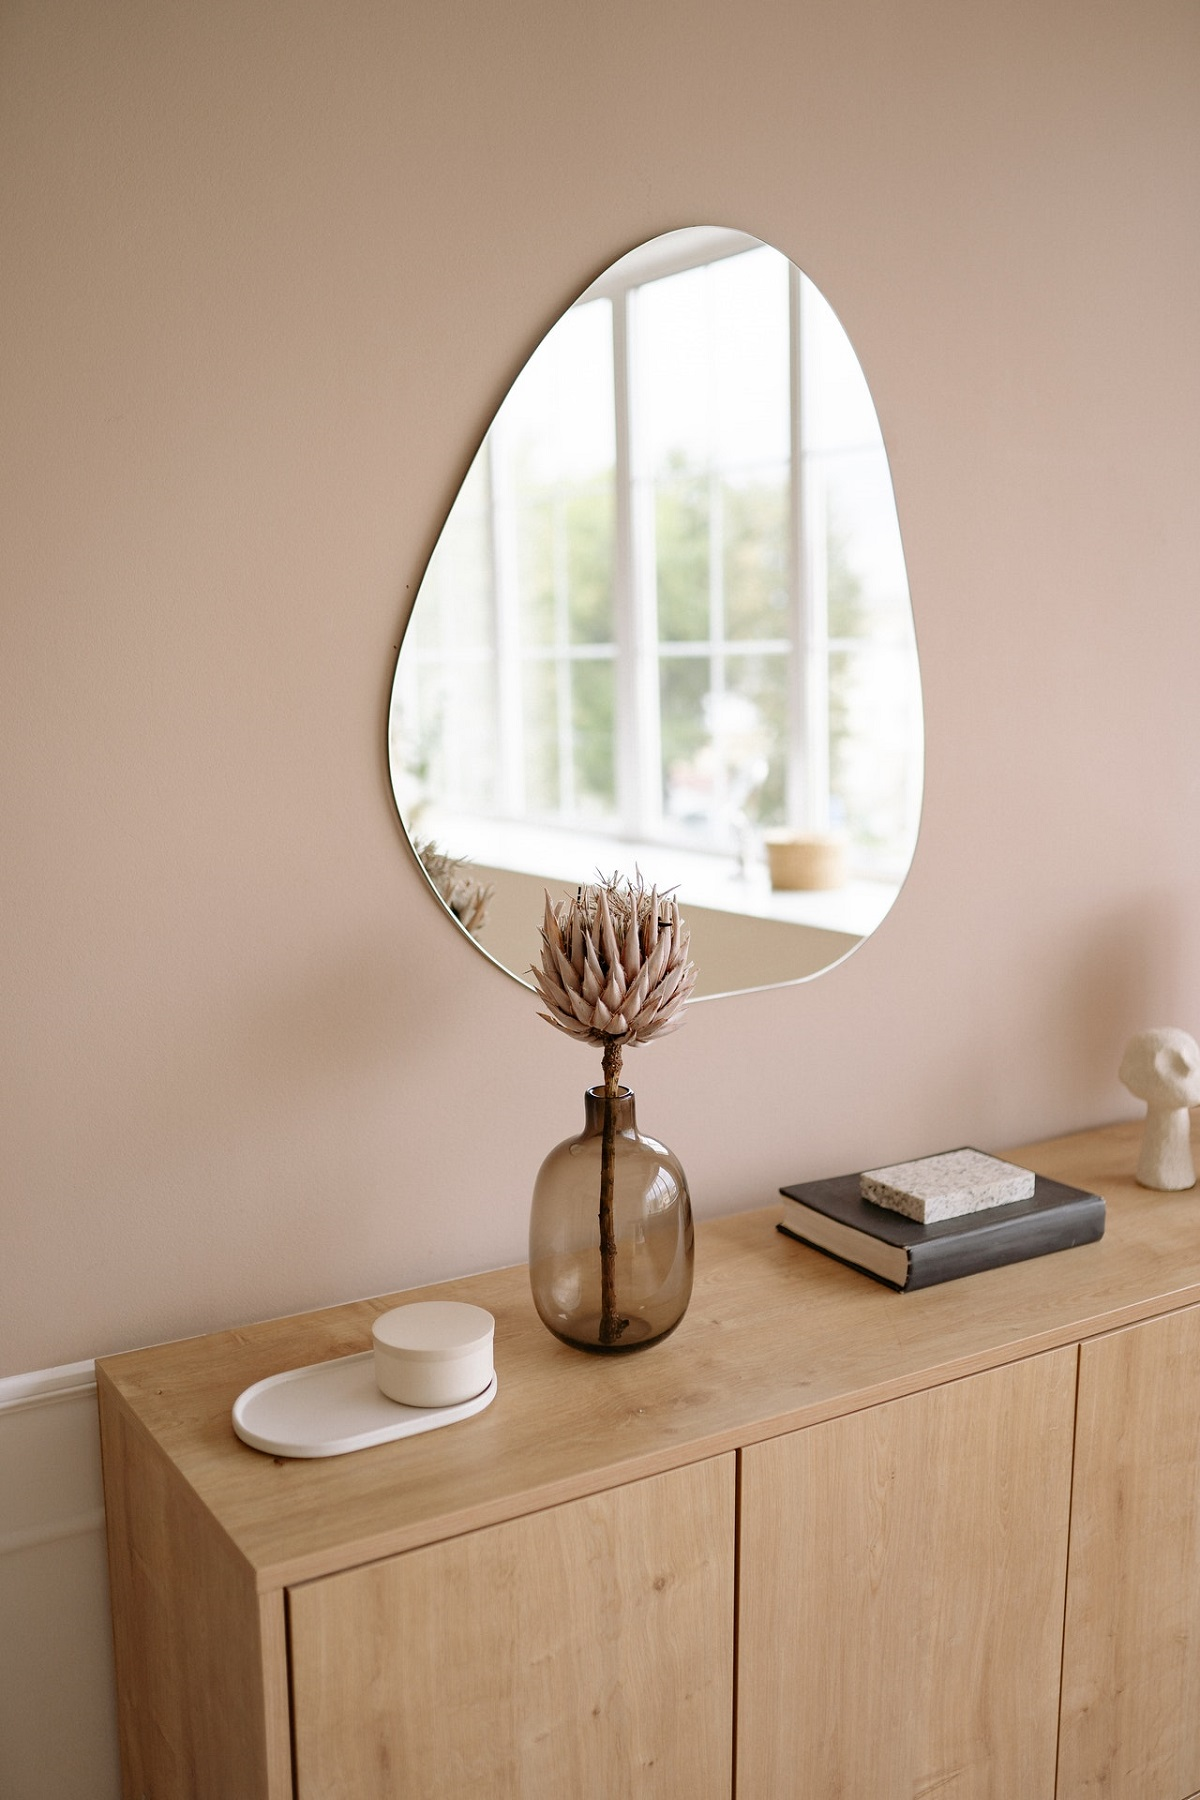 mirror hanging on a wall